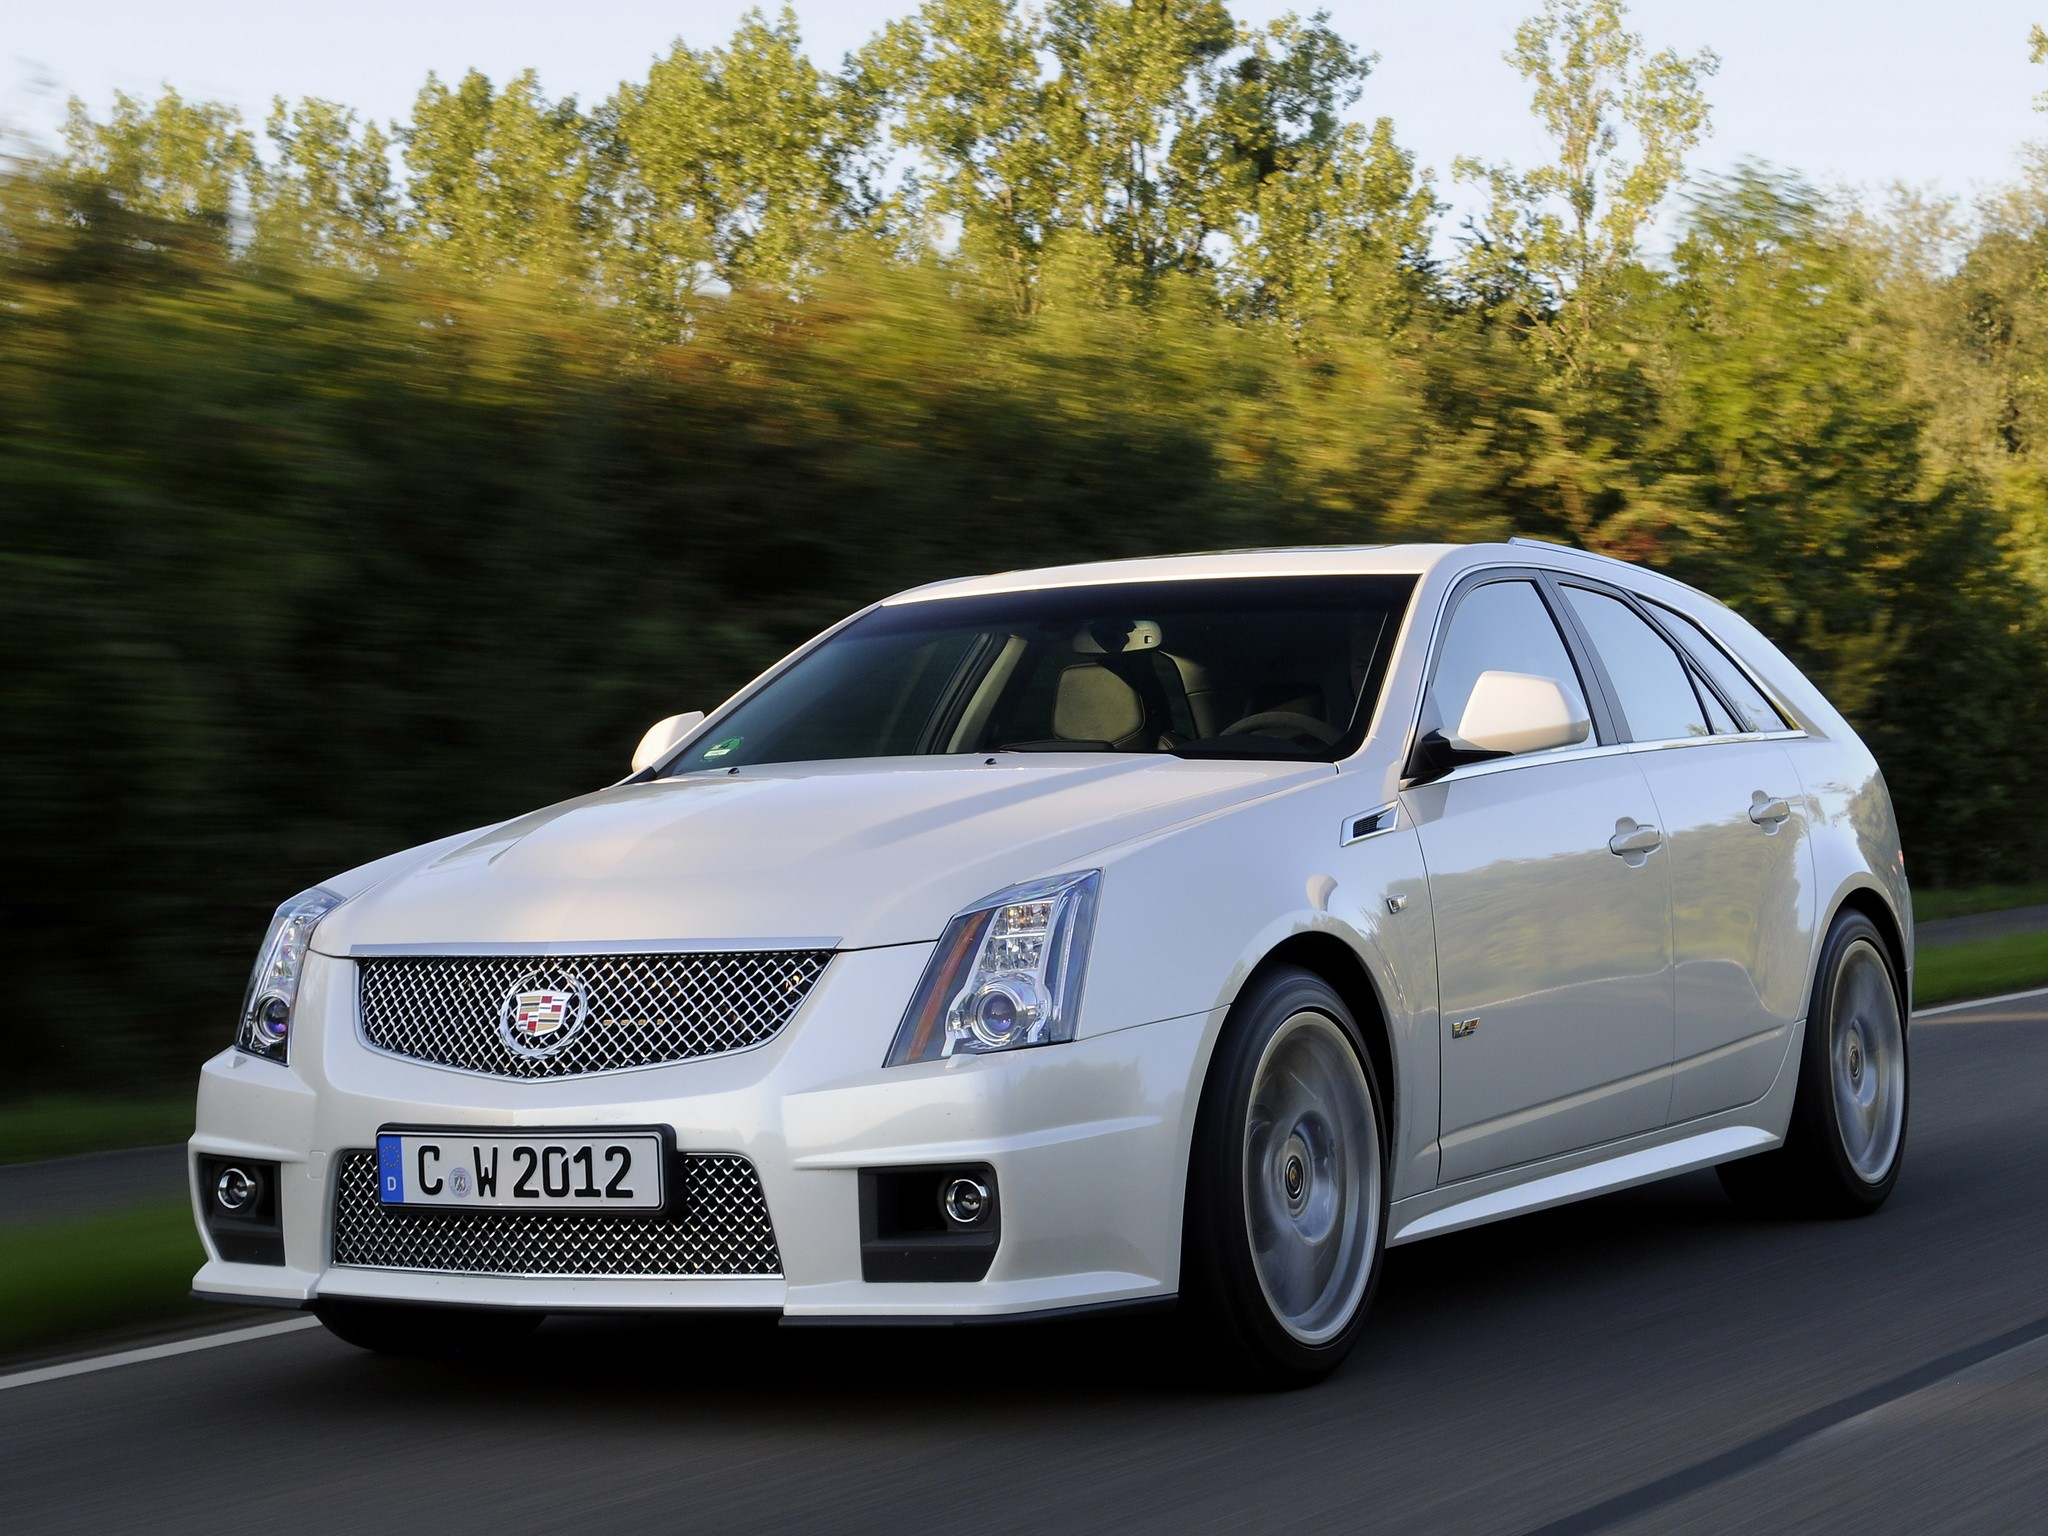 2019 Cadillac Cts >> 2018 Cadillac CTS Sport Wagon | Car Photos Catalog 2018